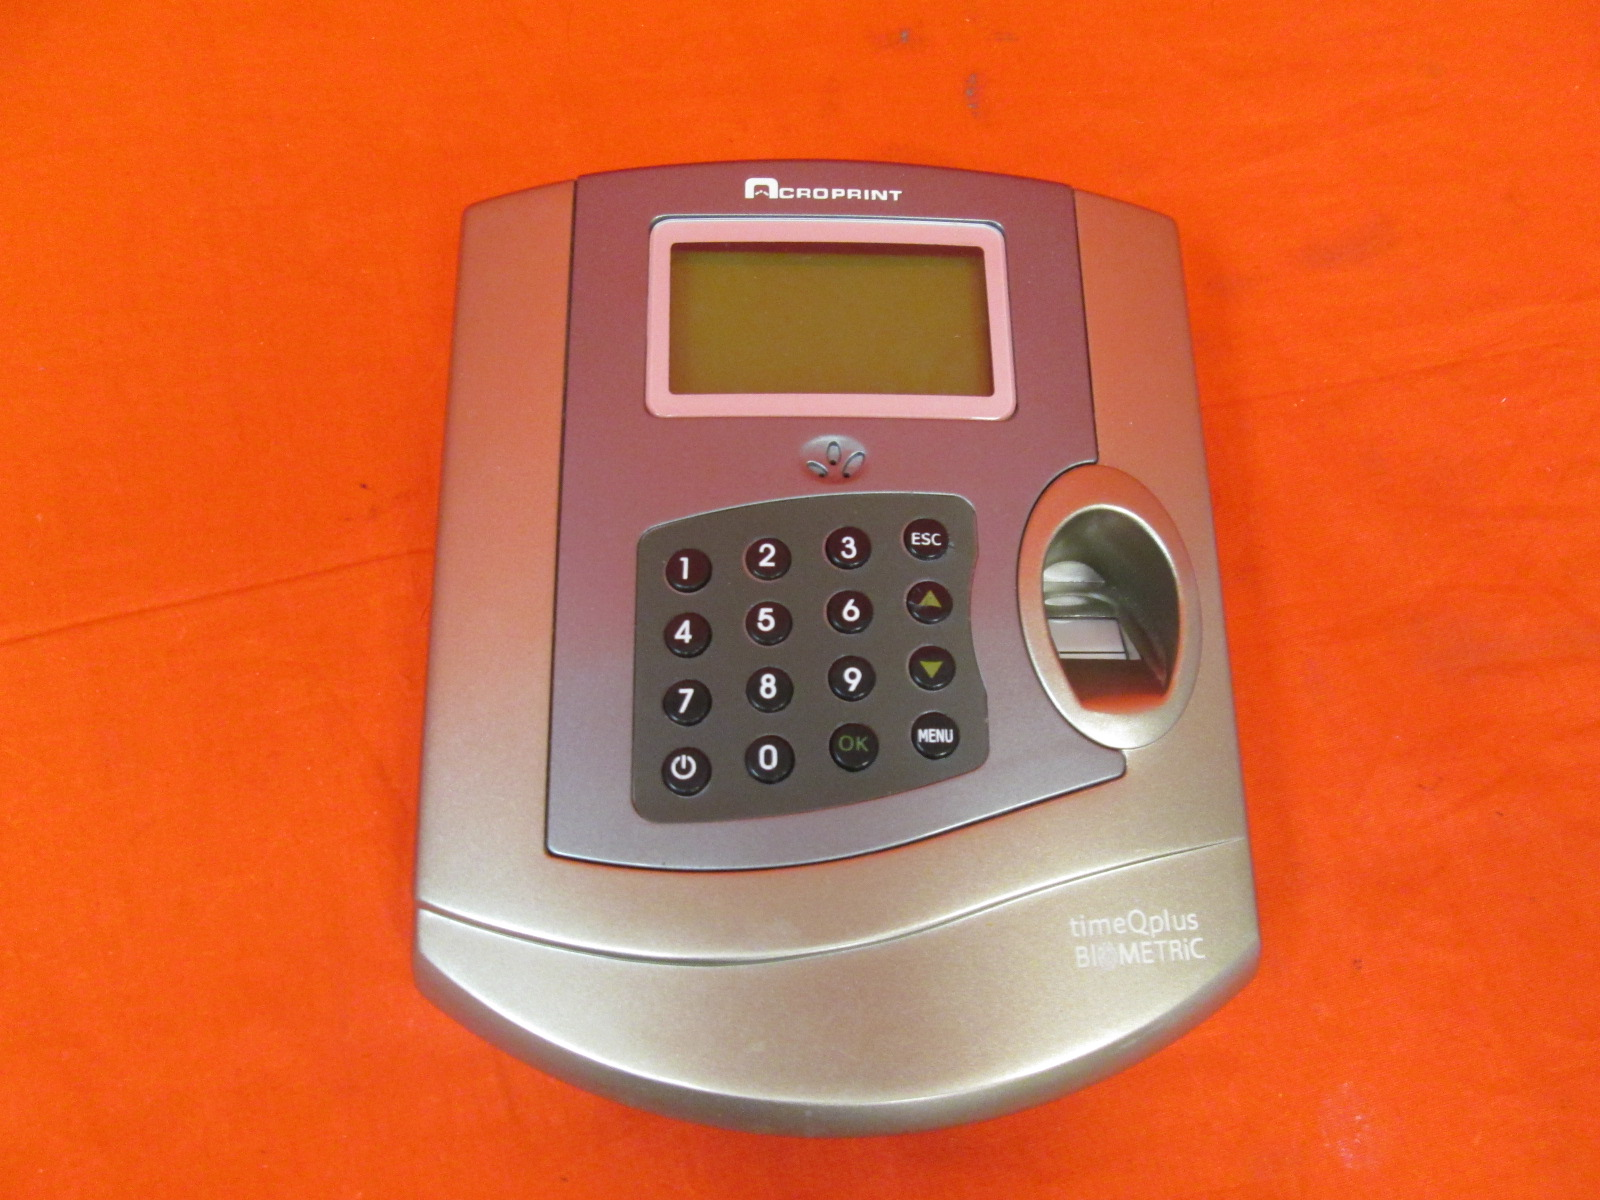 Acroprint 010231000 Time Q Plus Biometric Time And Attendance System